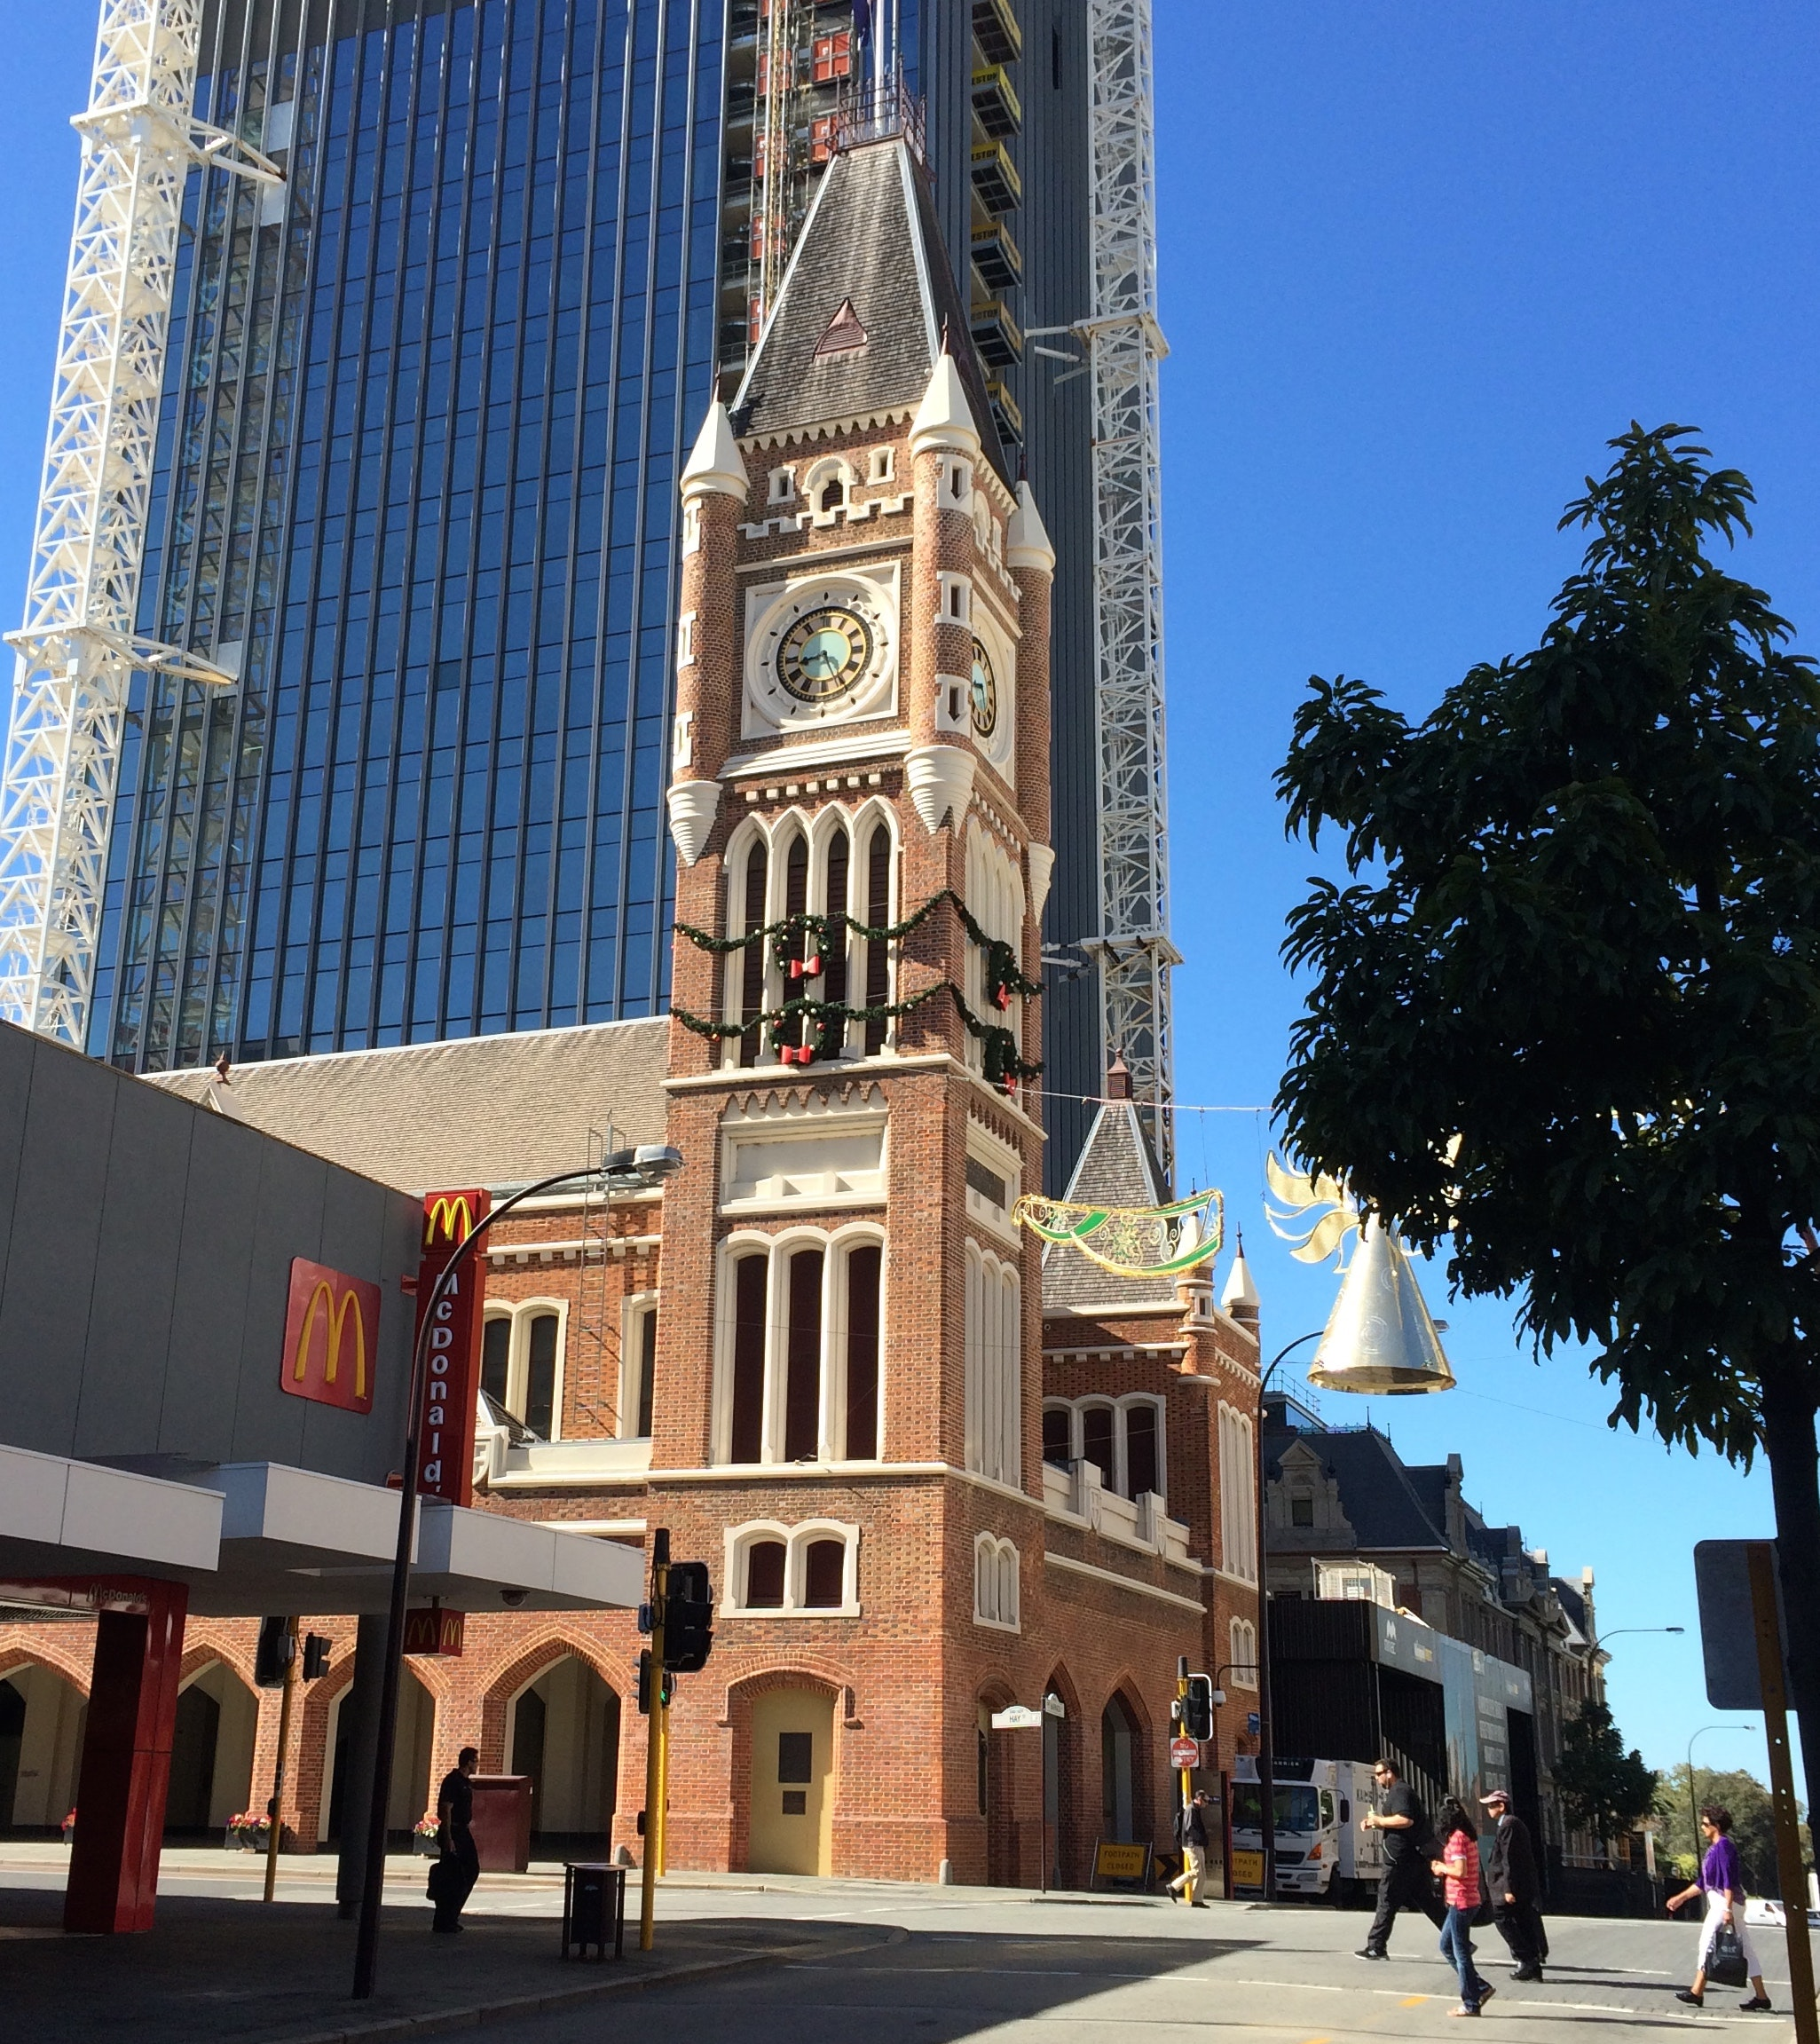 Perth Town Hall, built by convicts